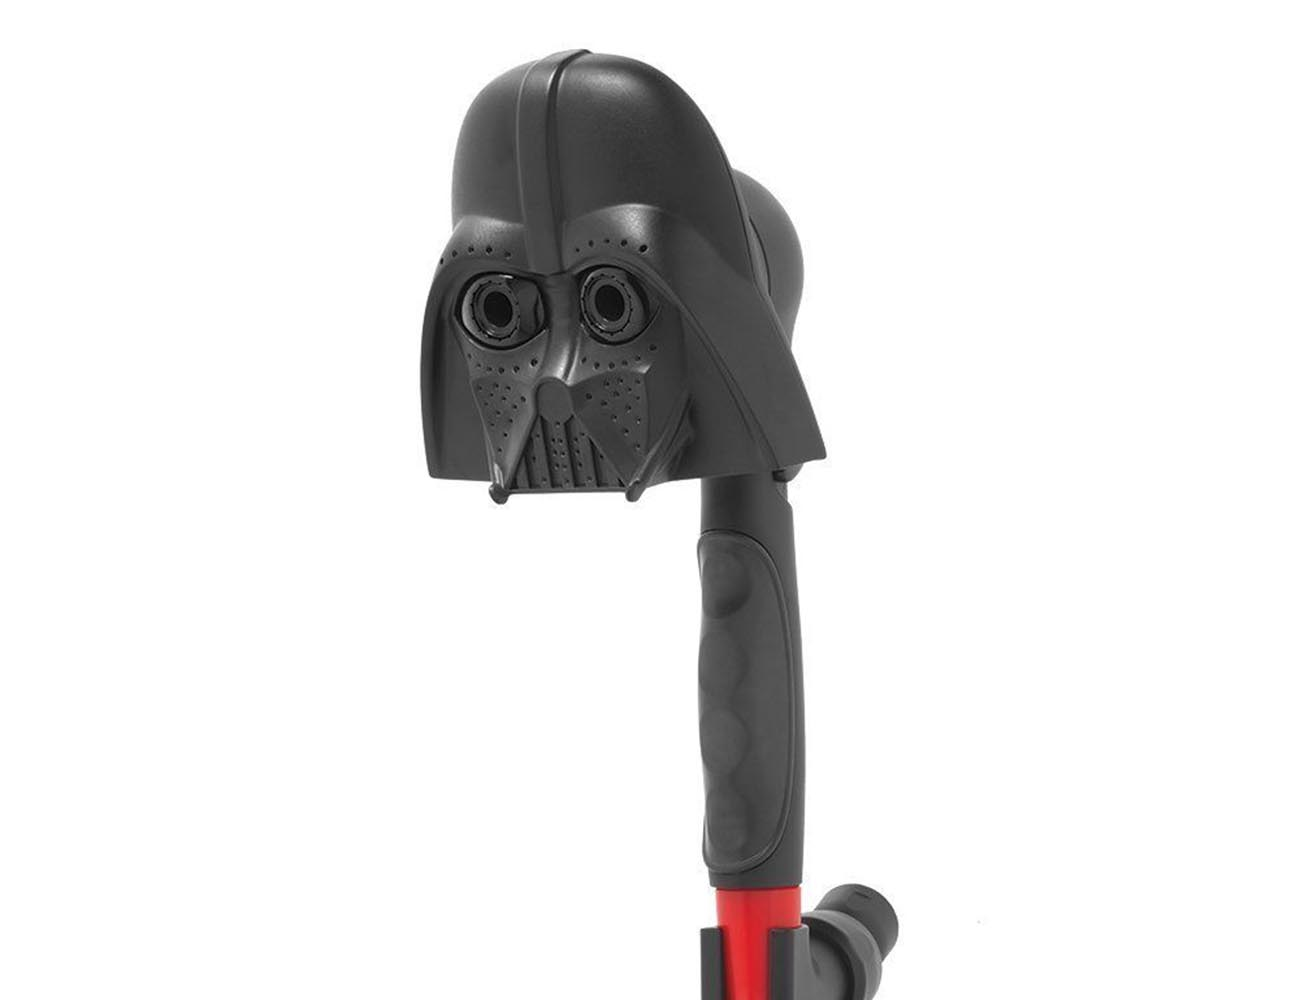 Darth Vader Showerhead by Oxygenics